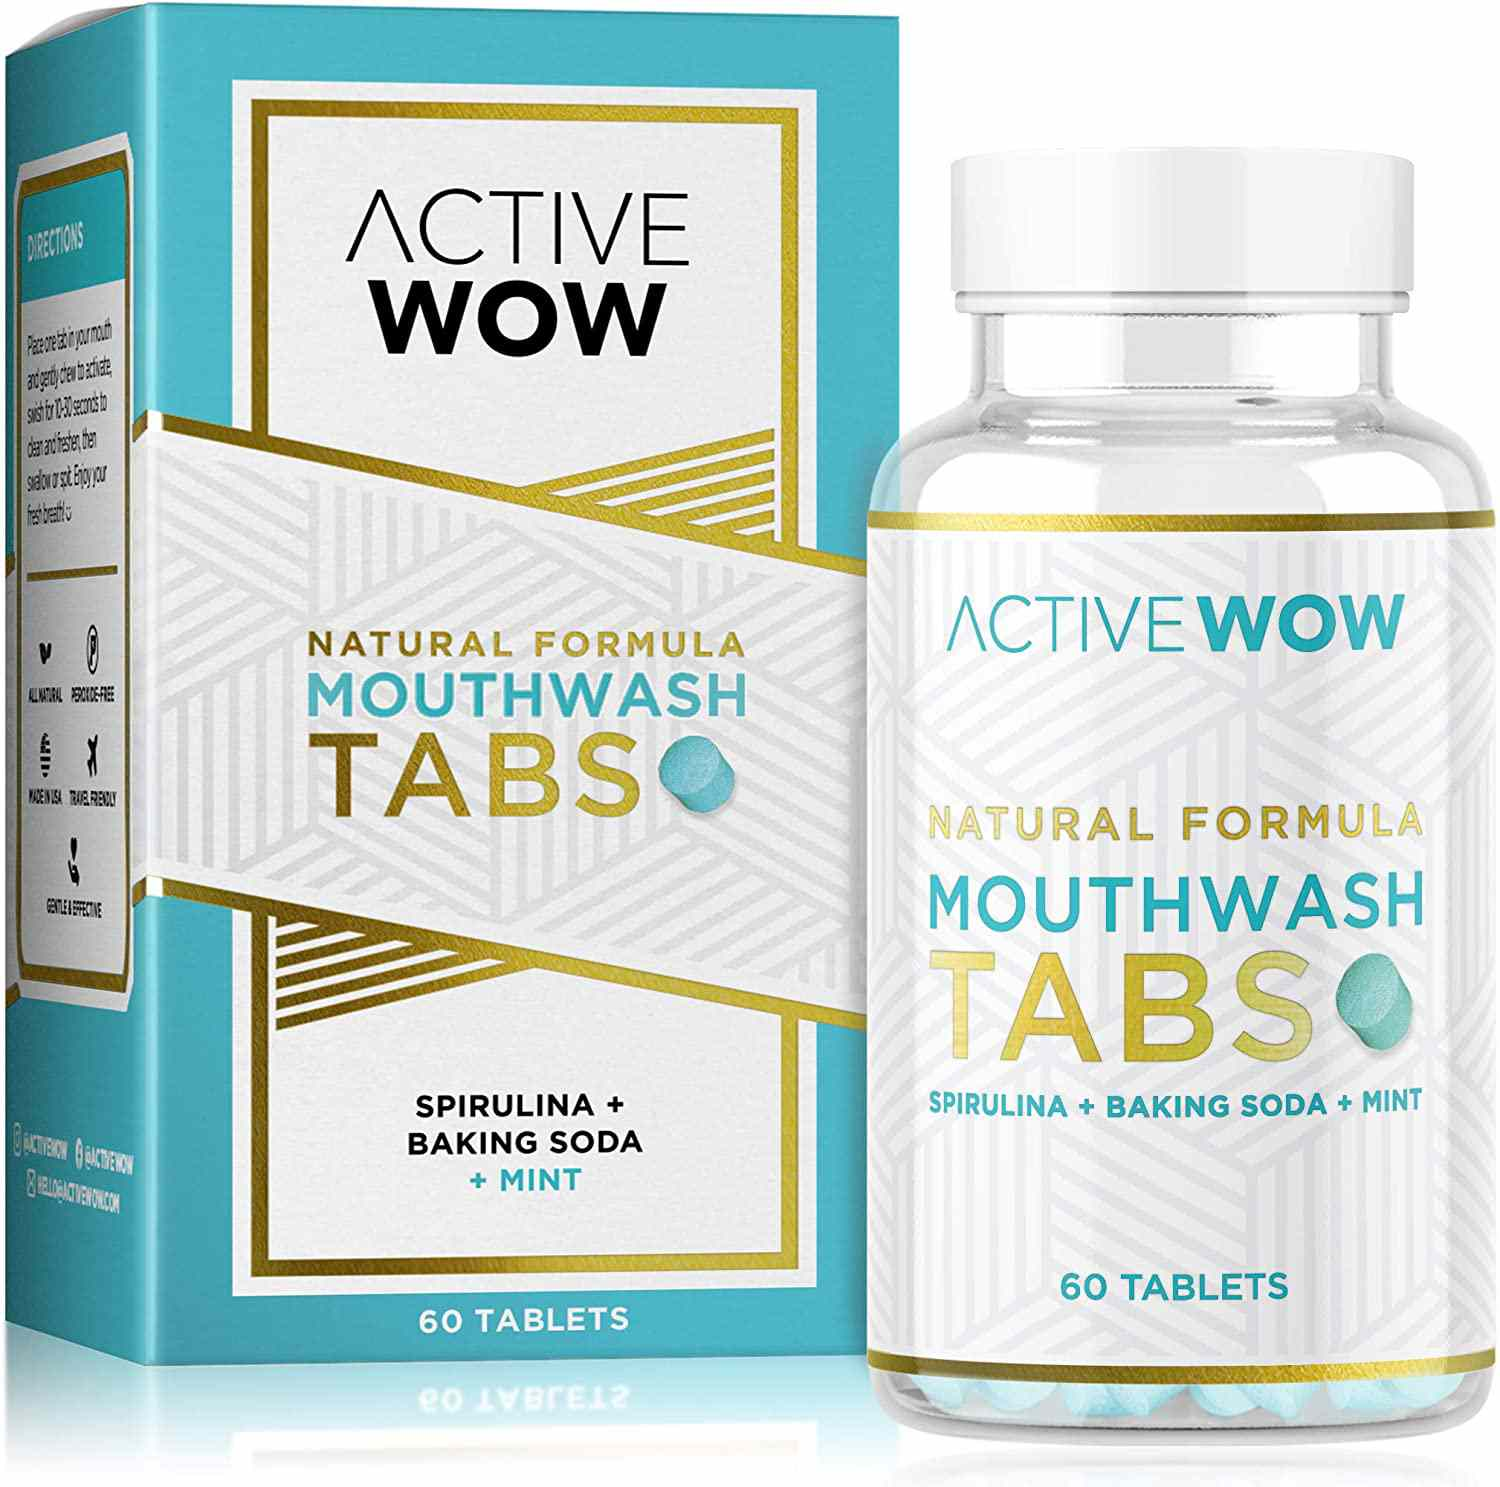 Active Wow Mouthwash Tabs